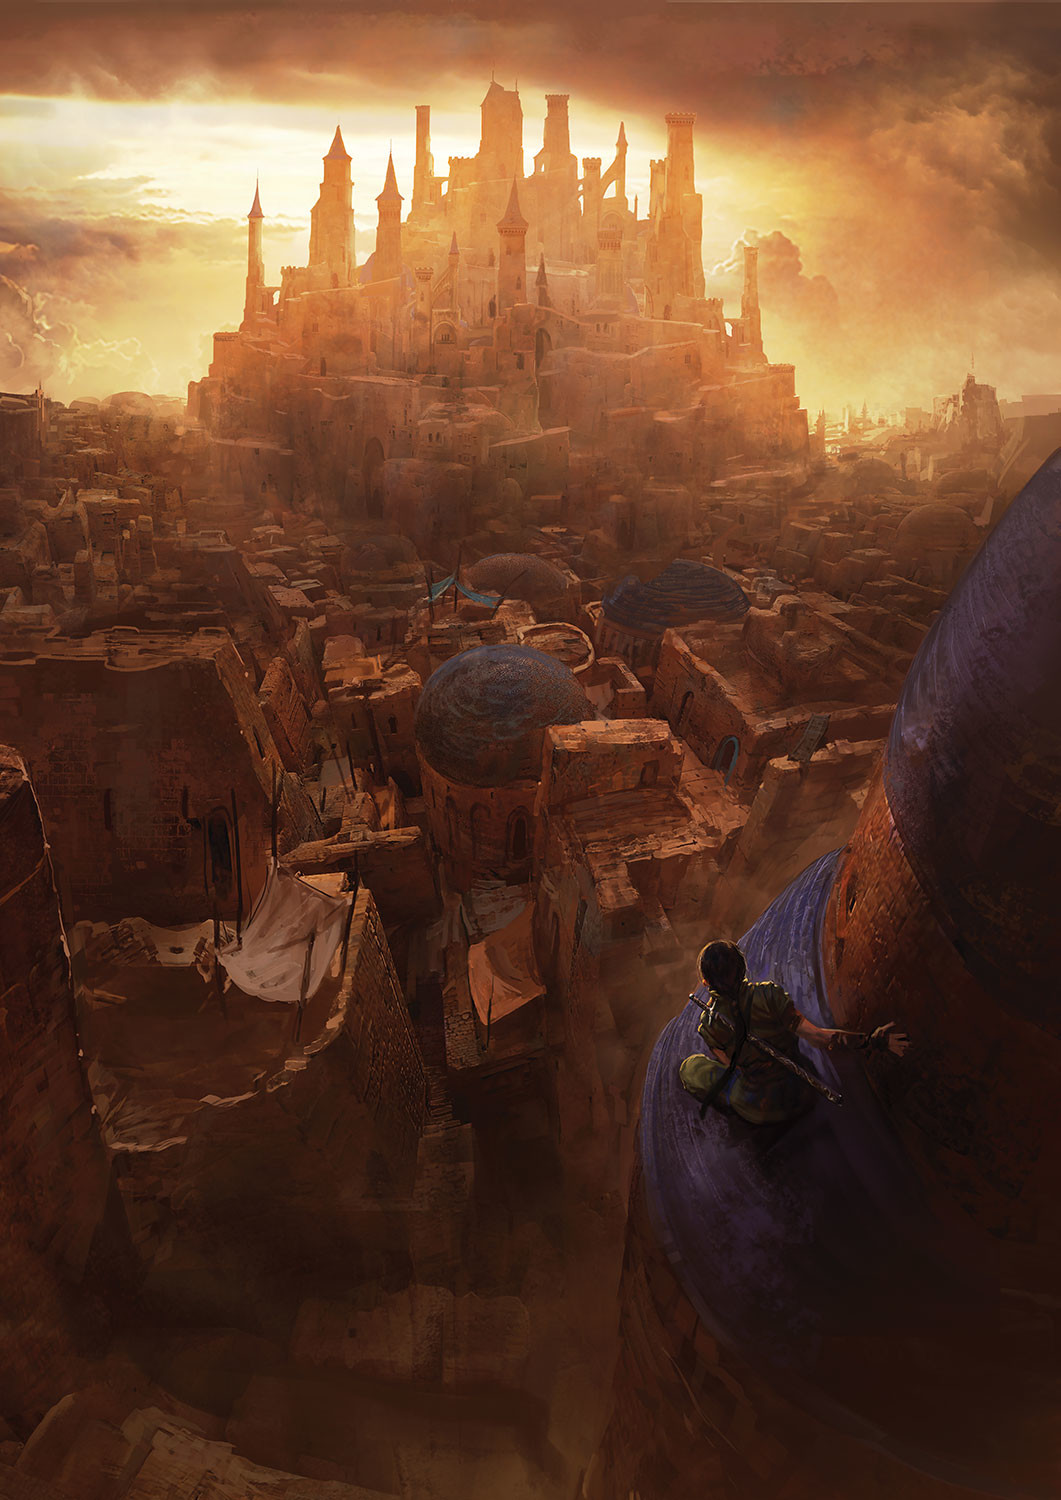 Marc Simonetti Digital Painting 12 Kings of Sharakai by Bradley P. Beaulieu